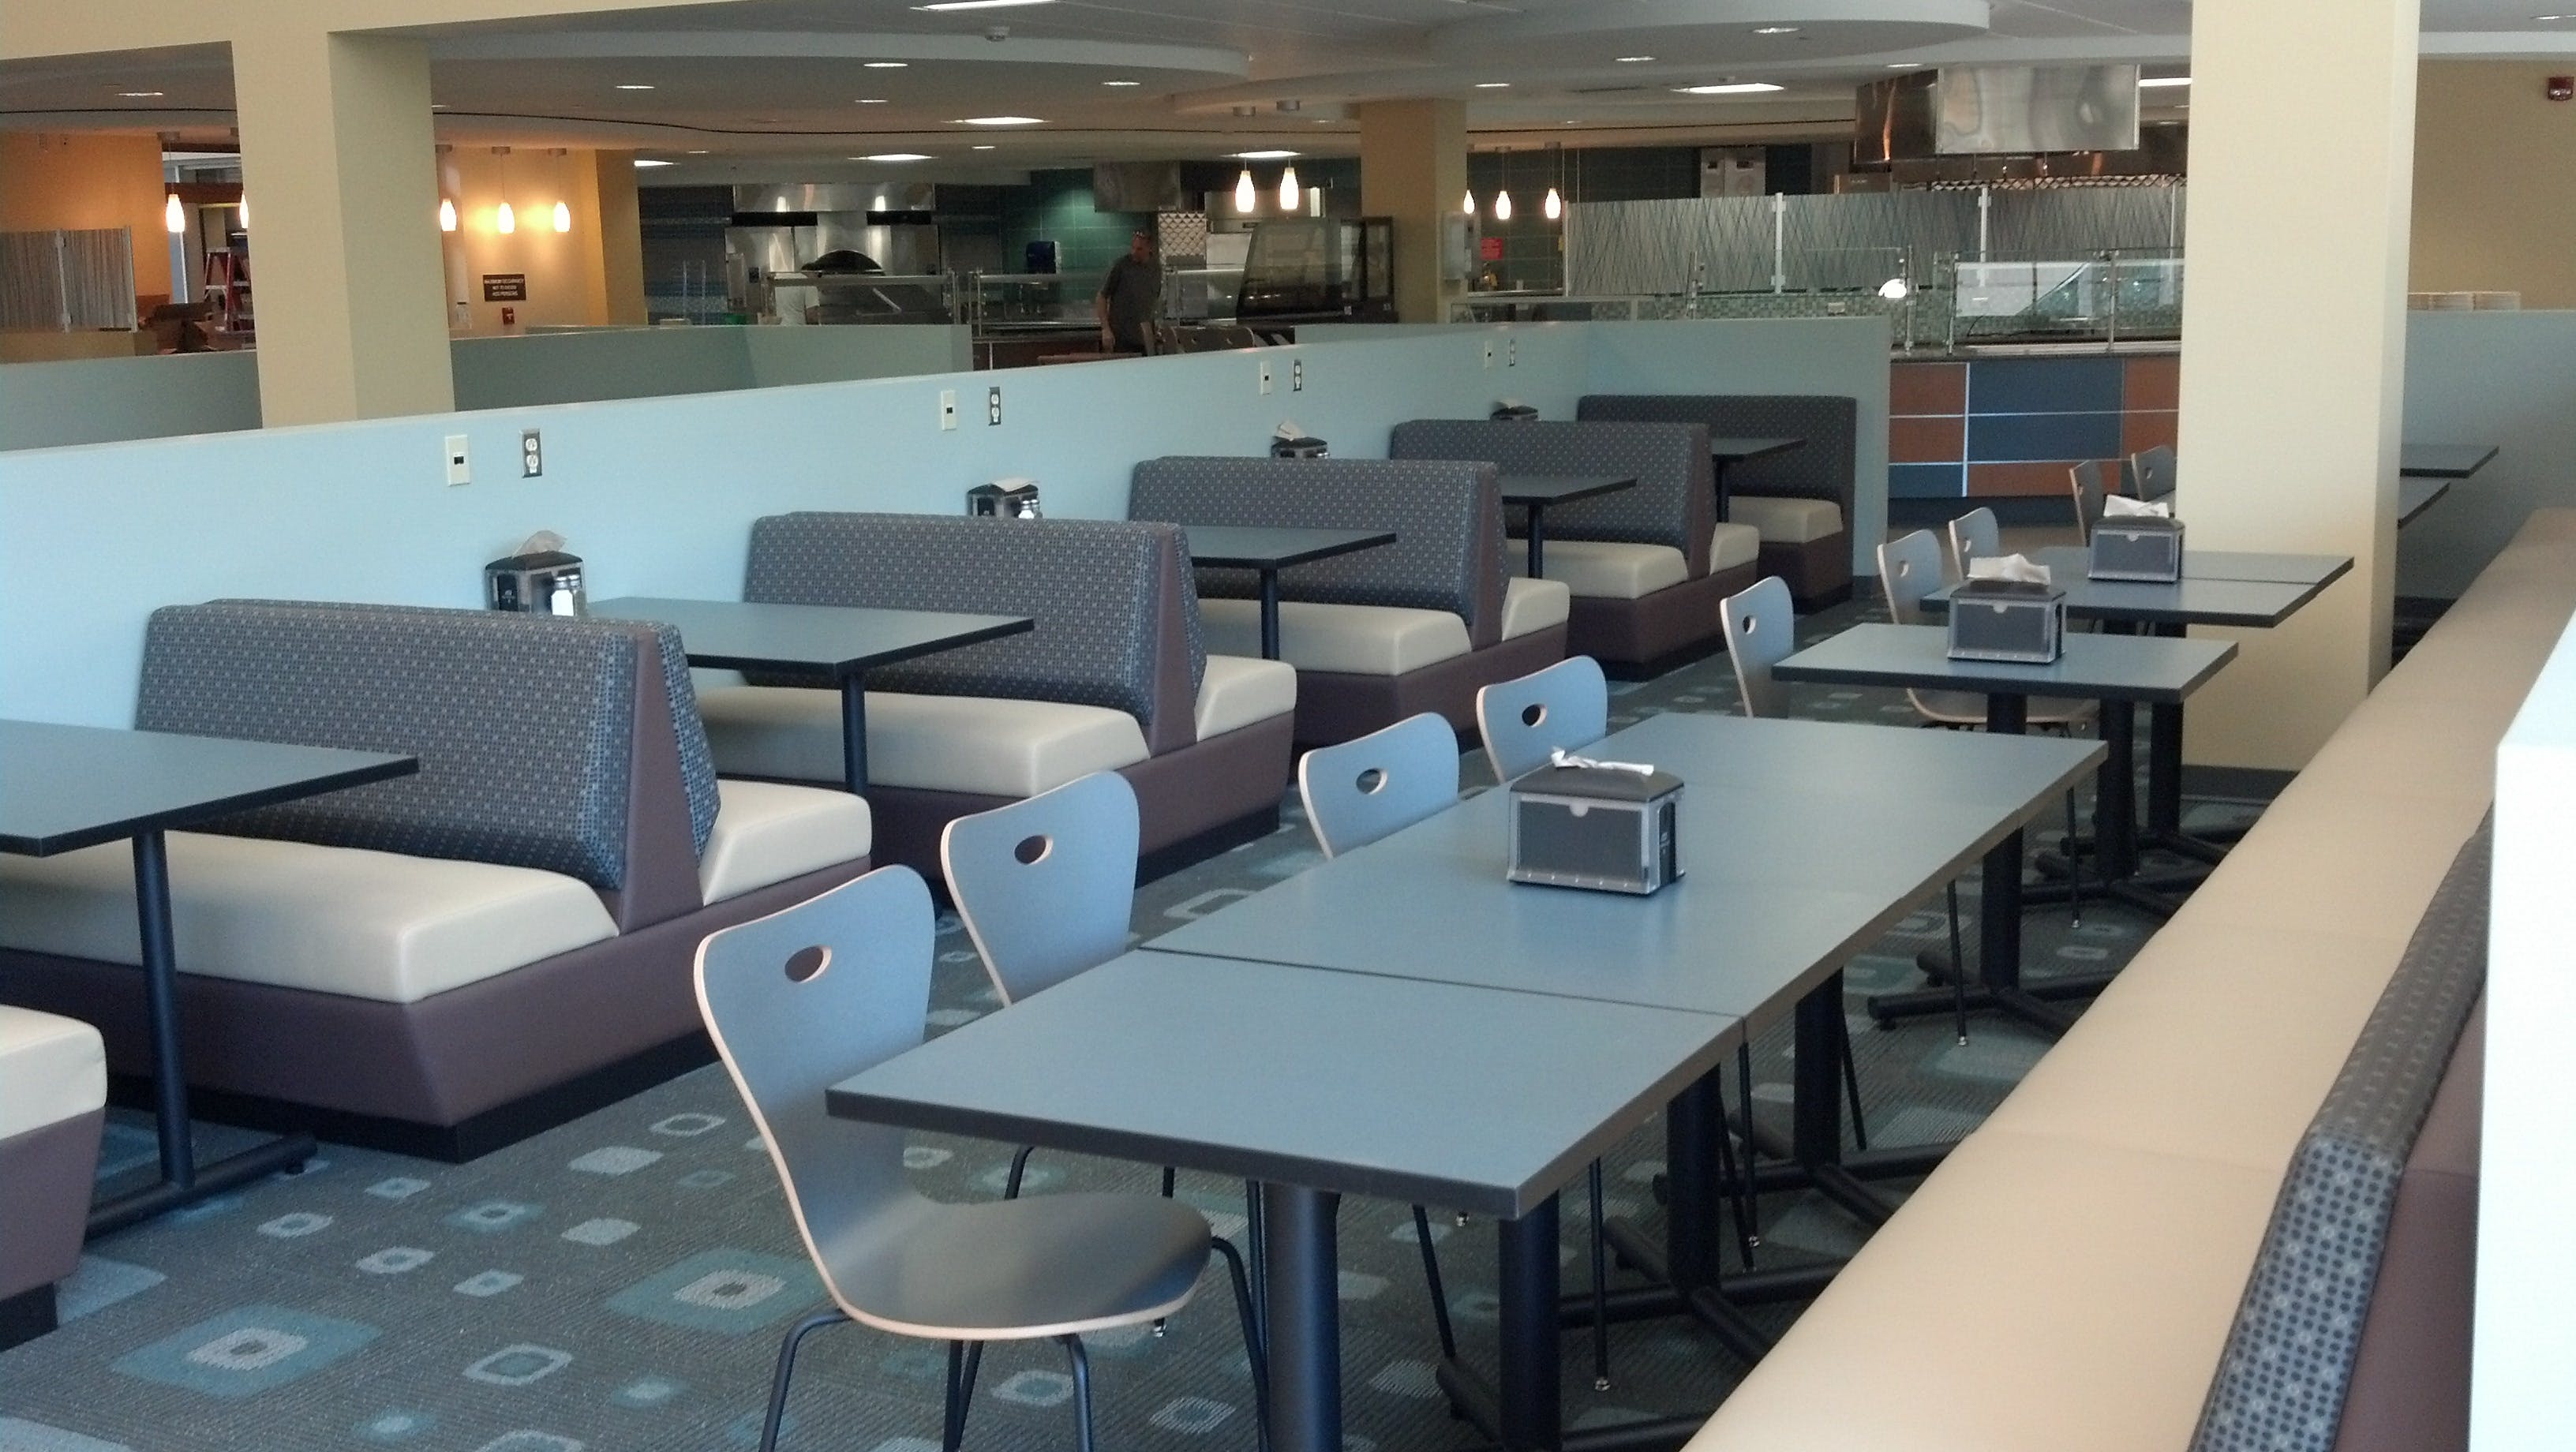 Suny It Dining Hall Roxanne Button Archinect